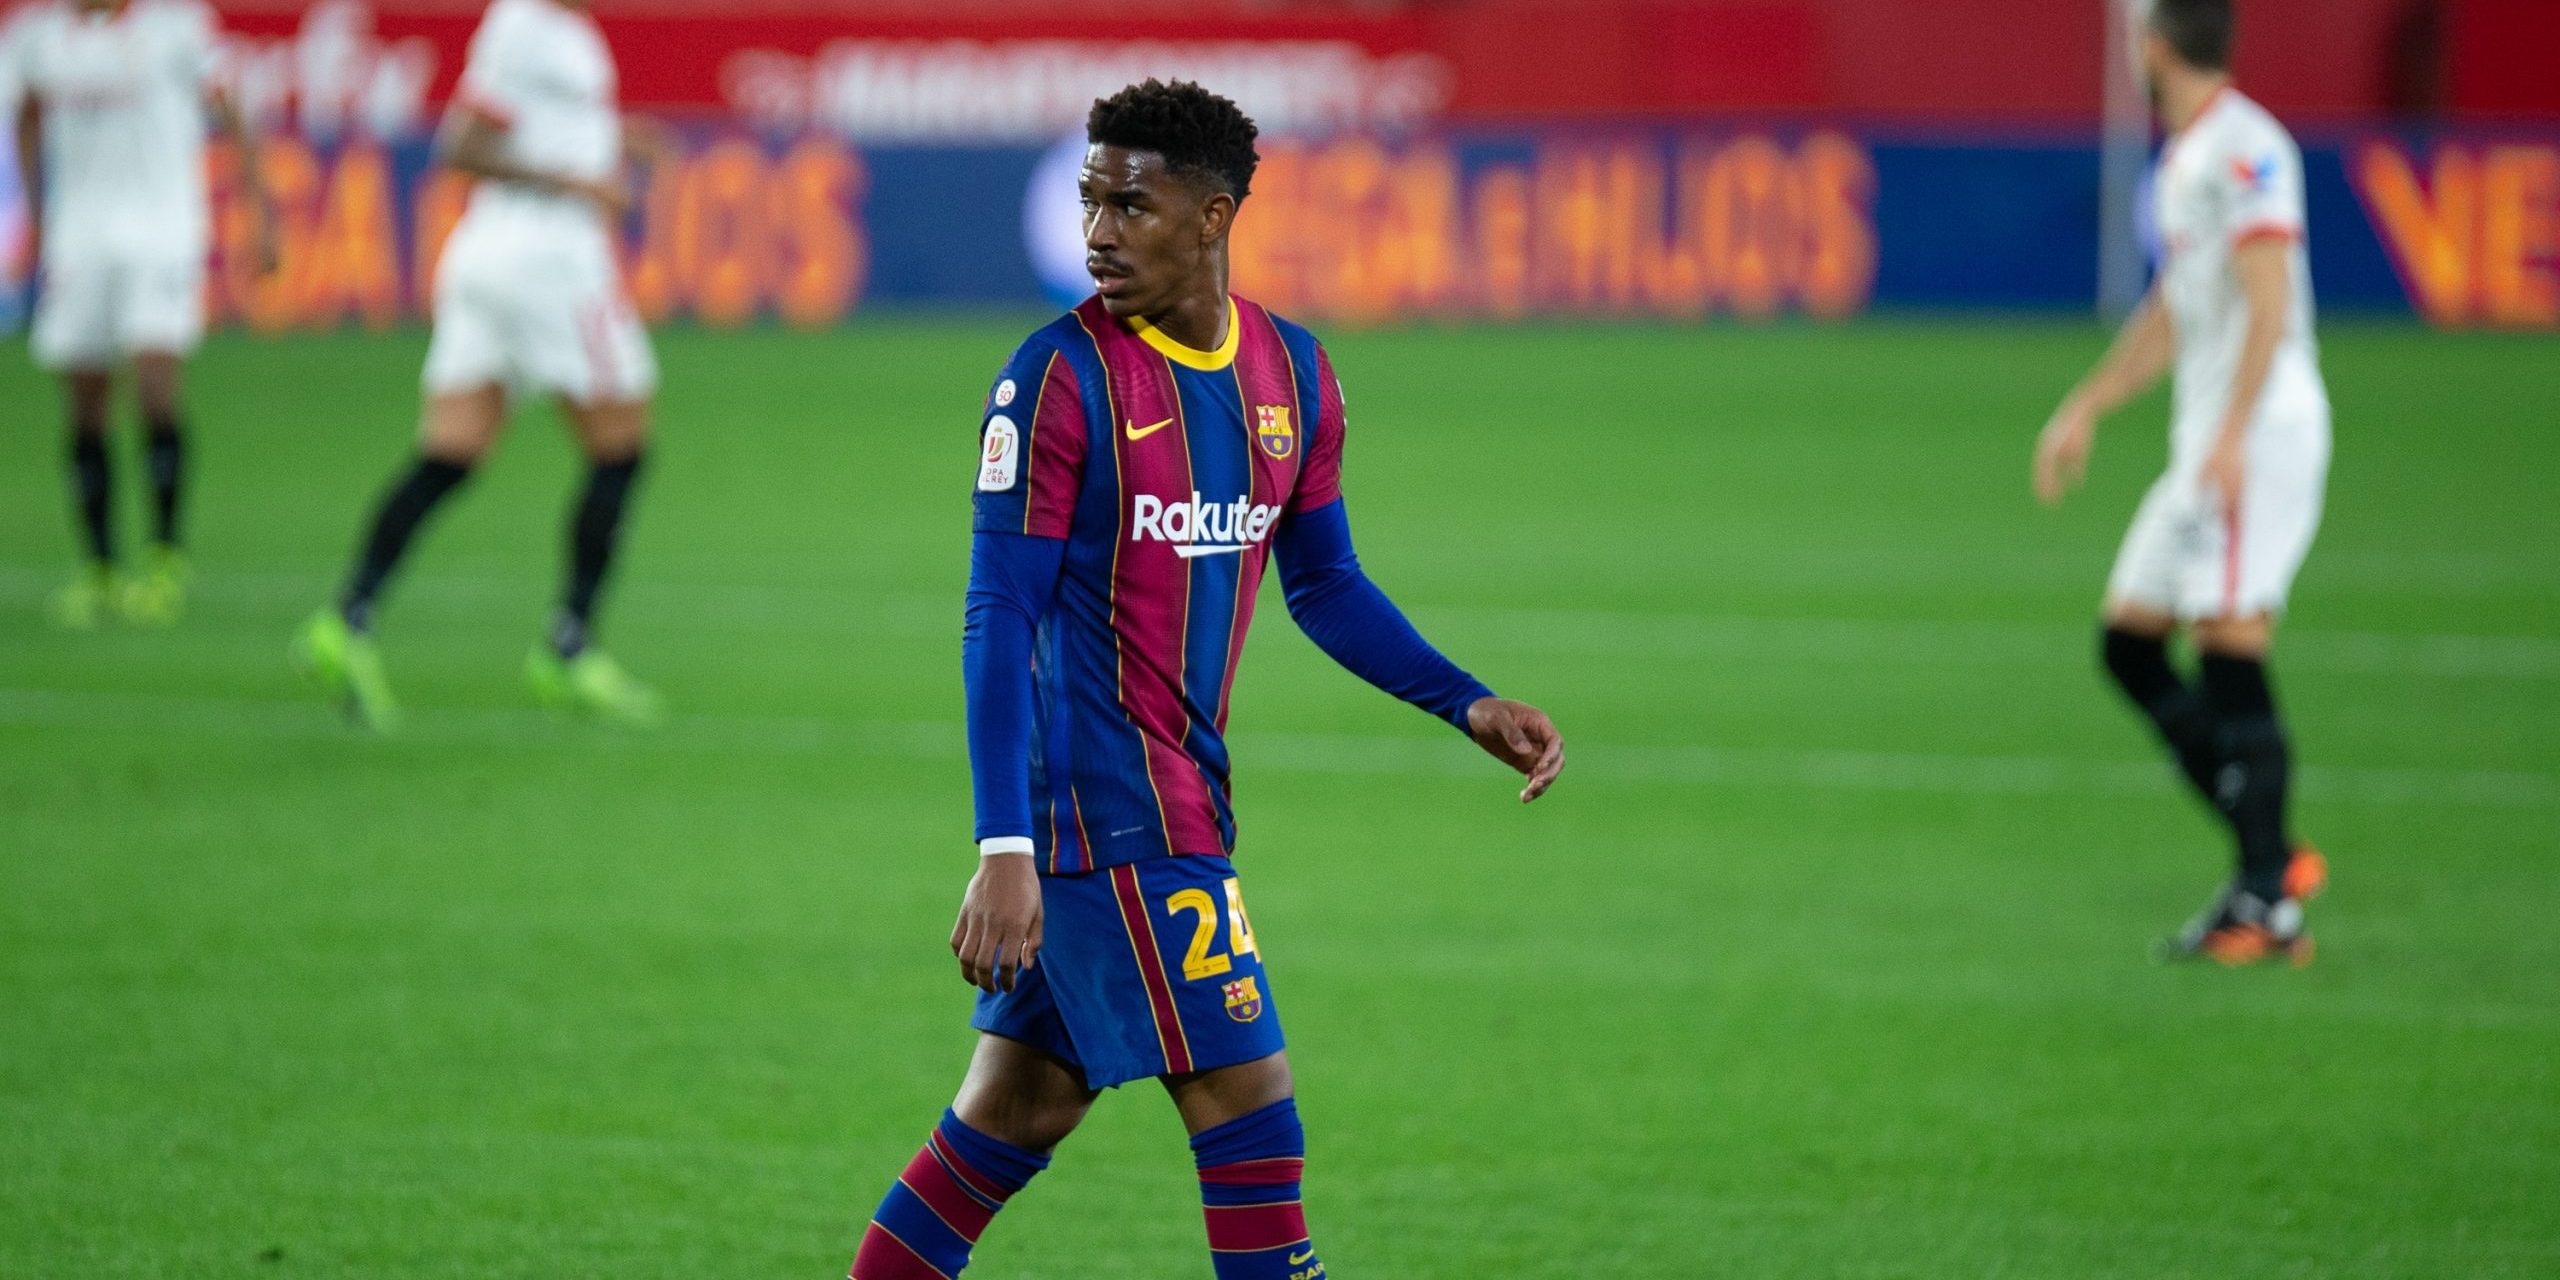 Junior Firpo of Barcelona during Semi-finals round of Copa del Rey, football match played between Sevilla Futbol Club and Futbol Club Barcelona at Ramon Sanchez Pizjuan Stadium on February 10, 2021 in Sevilla, Spain. AFP7 /  Europa Press   (Foto de ARCHIVO) 10/2/2021 ONLY FOR USE IN SPAIN